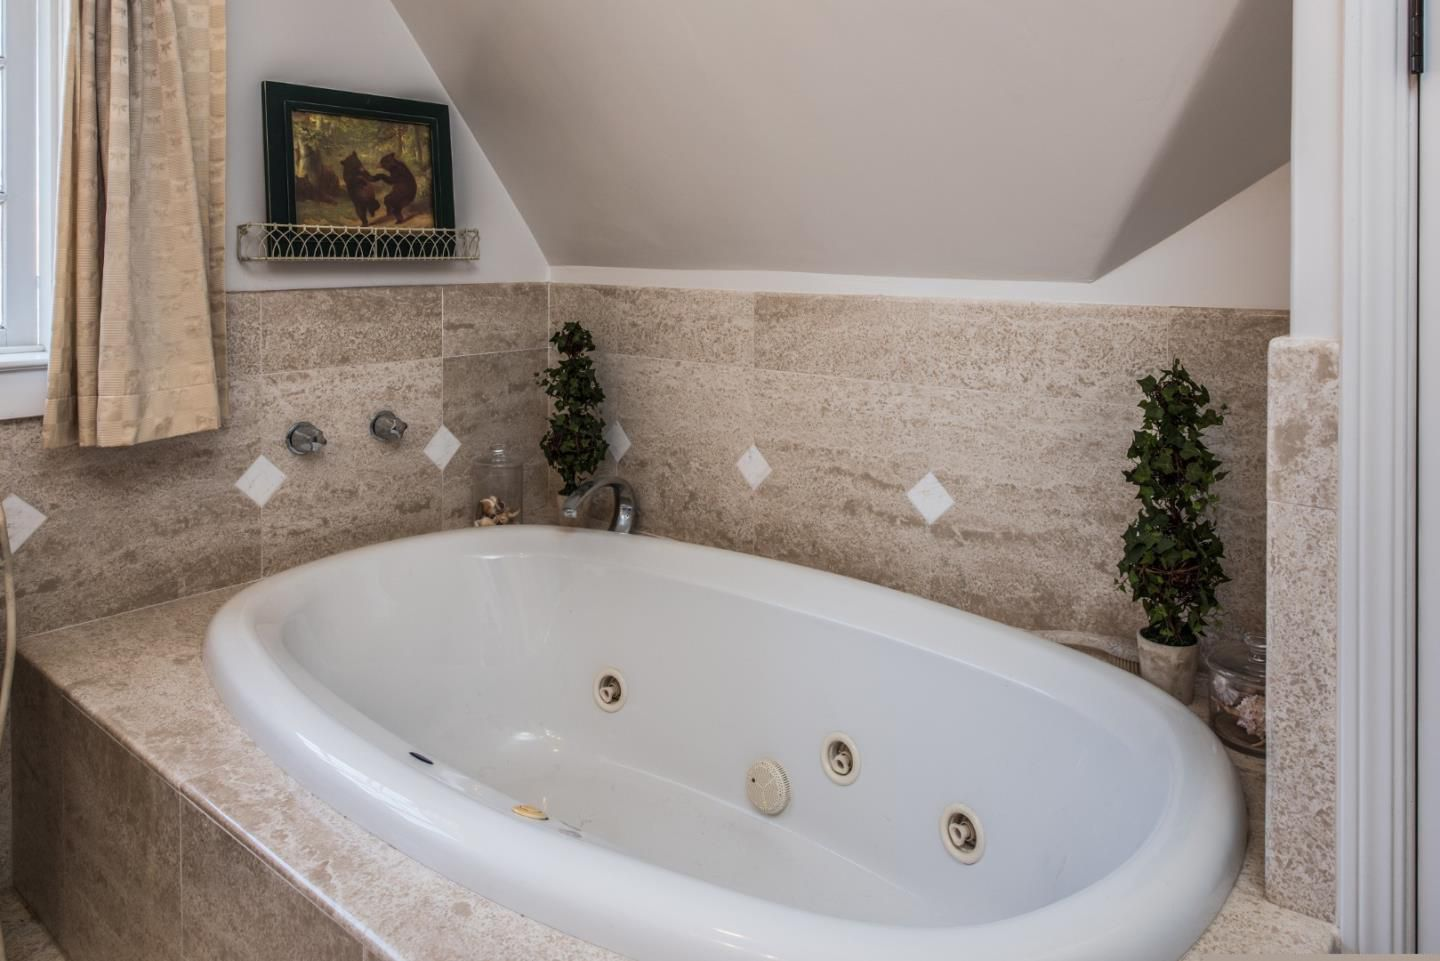 950 14th St, Pacific Grove, CA for sale in Candy Cane Lane neighborhood - cottage style master bath with jet tub